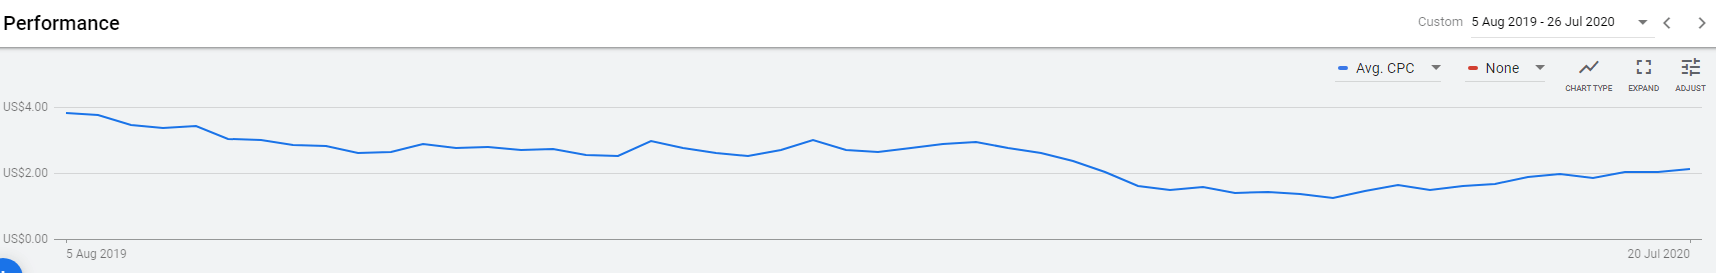 Weekly trend of Google Ads average cost-per-click over the past year - through July 26, 2020